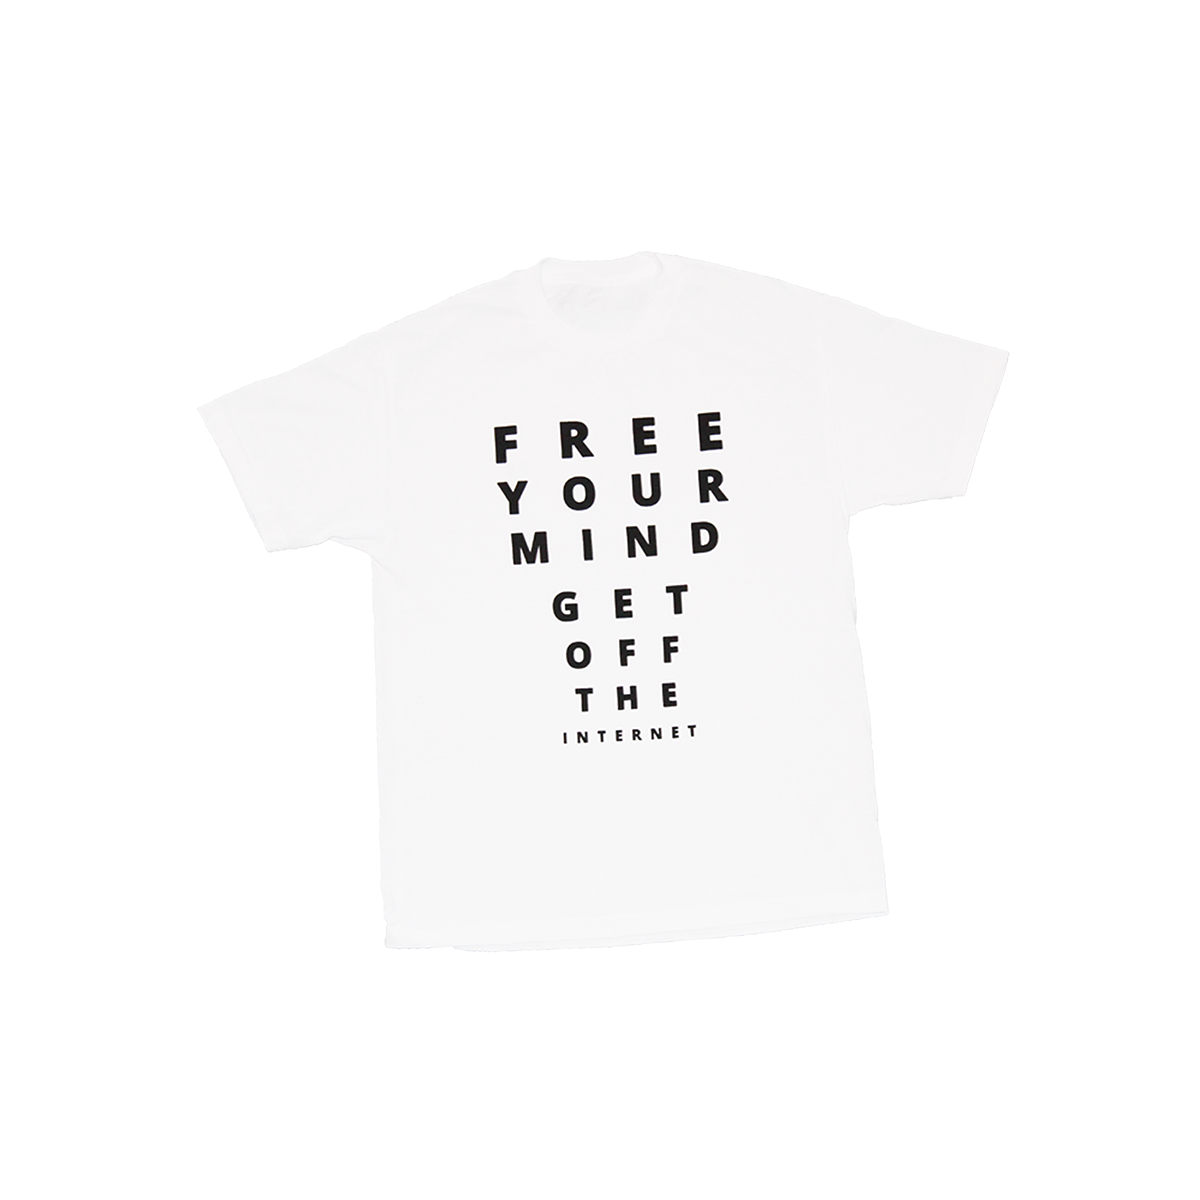 FREE YOUR MIND GET OFF THE INTERNET T-SHIRT